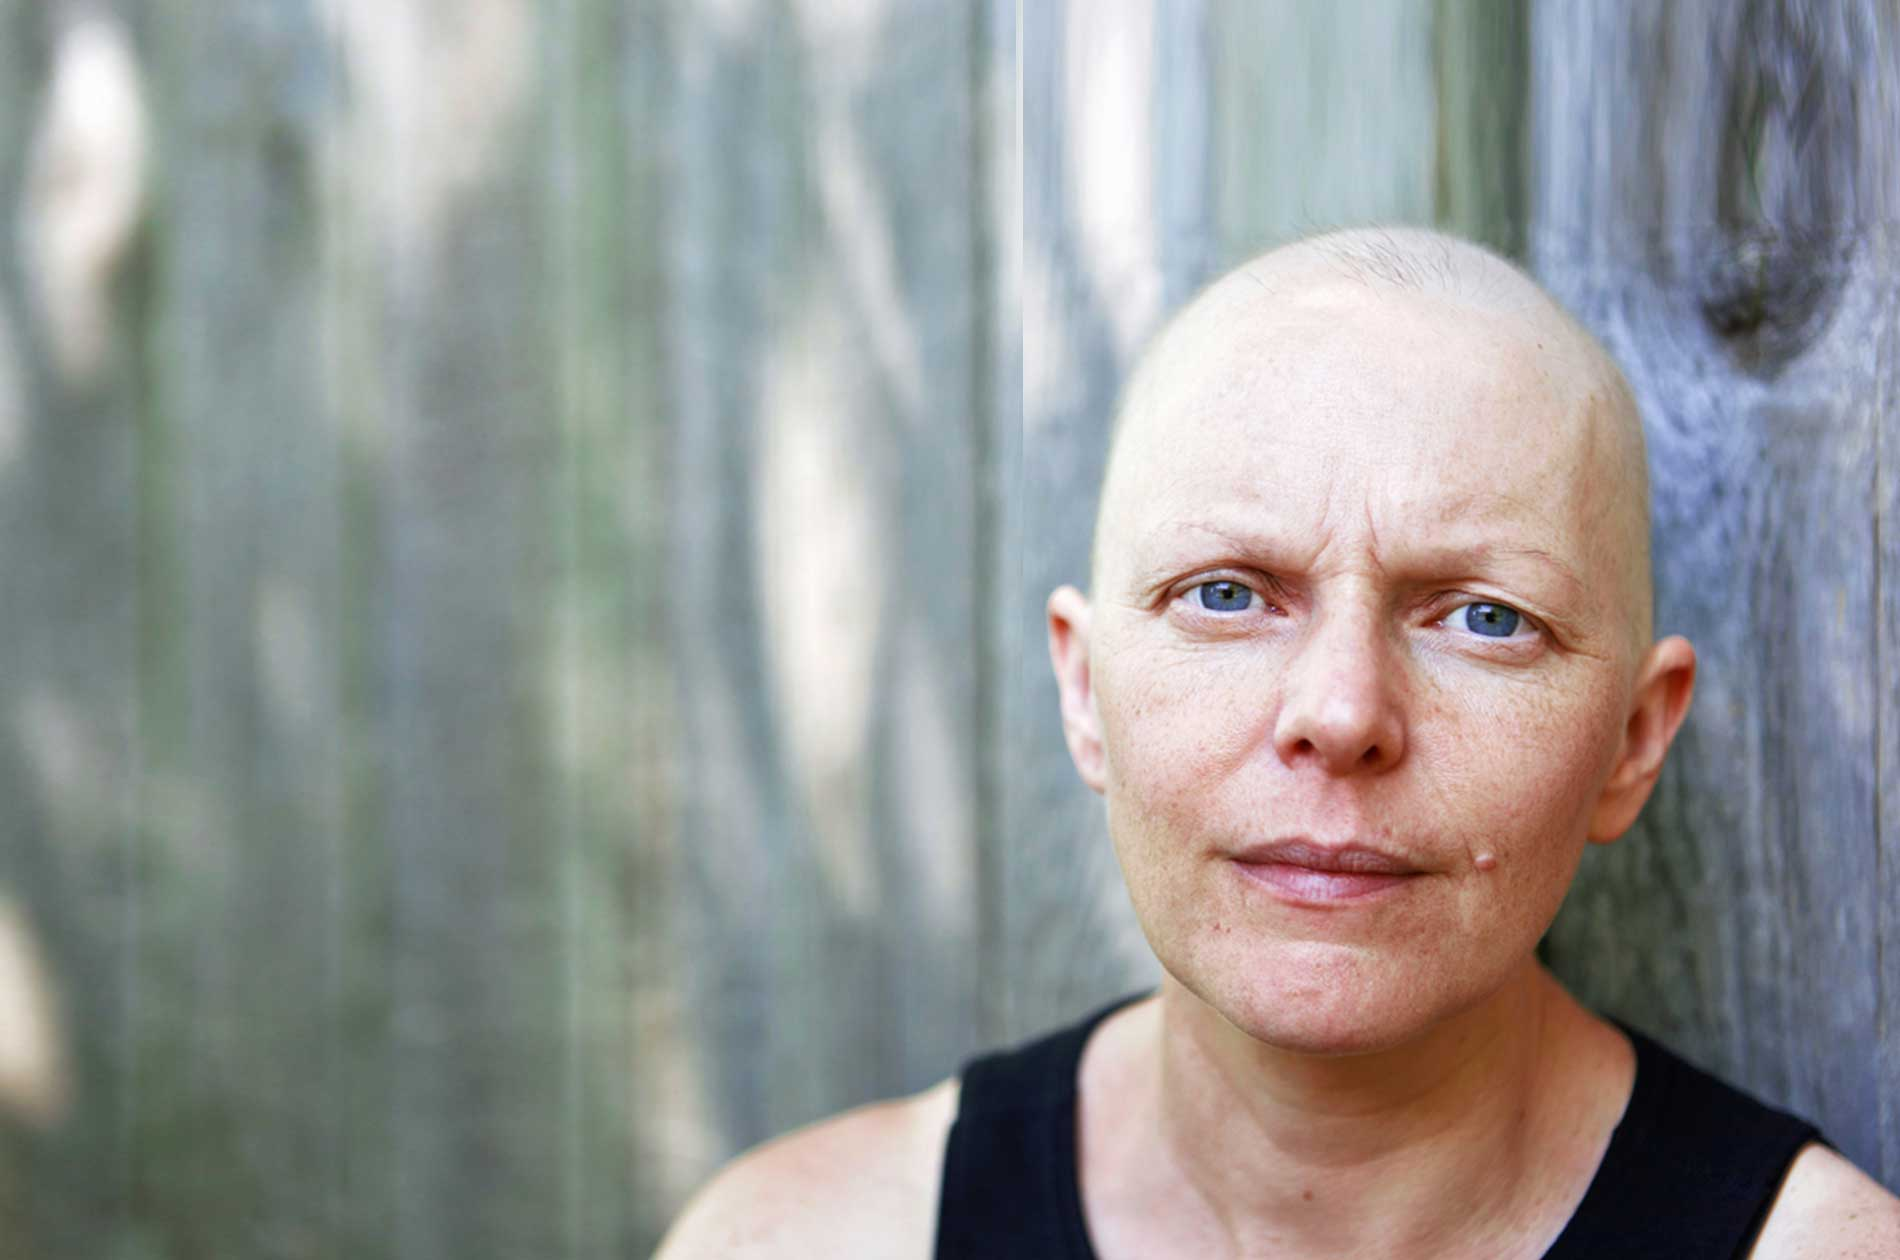 A woman who has suffered permanent hair loss